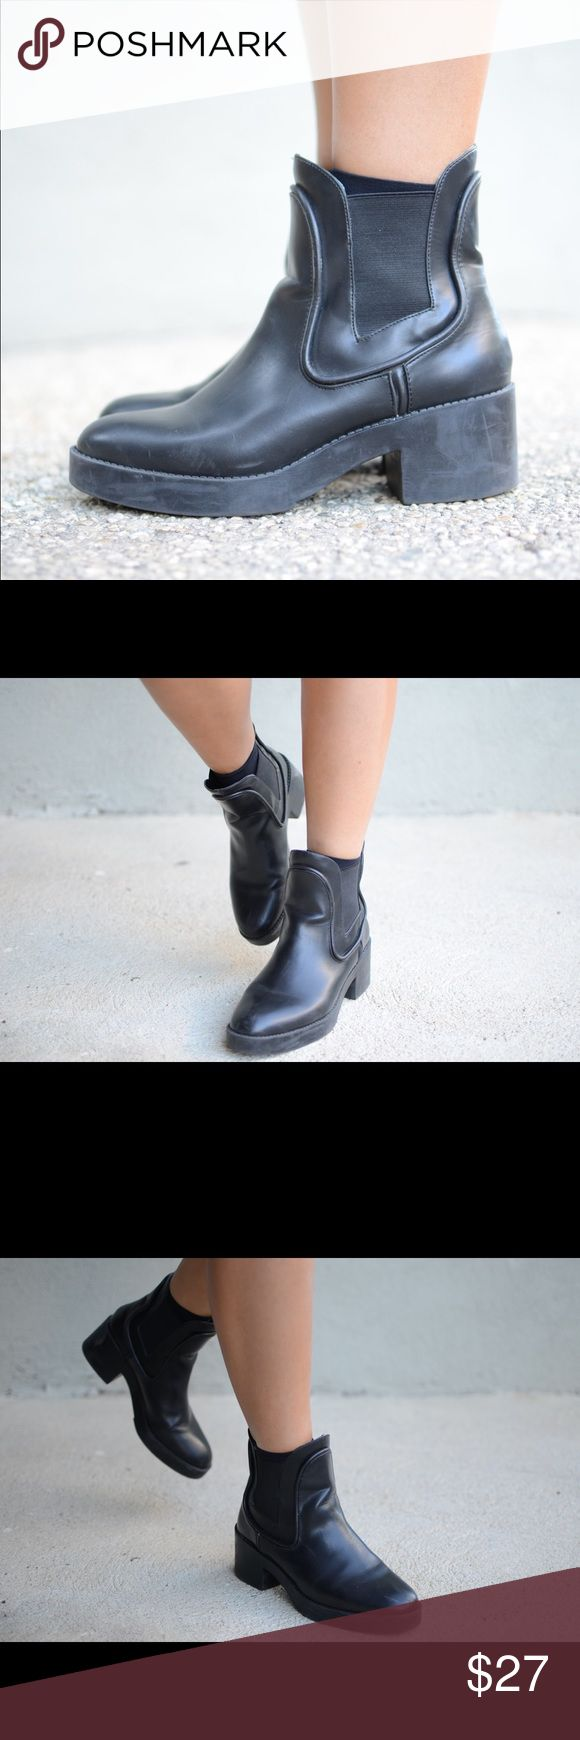 """Zara Chelsea Boots in Black I think I've been on LA for too long: I ordered a $5.75 latte and I thought """"wow that is really cheap"""". Cute and almost new Zara Trafaluc Black Chelsea Boots. Minor signs of wear. Just to get you ready for your fall and winter to come. Size 39 - I would say a 8. The heel is 1.25"""" without the plateau. With plateau is approx 2"""". #zara #chelsea #boots #booties #black Zara Shoes Ankle Boots & Booties"""